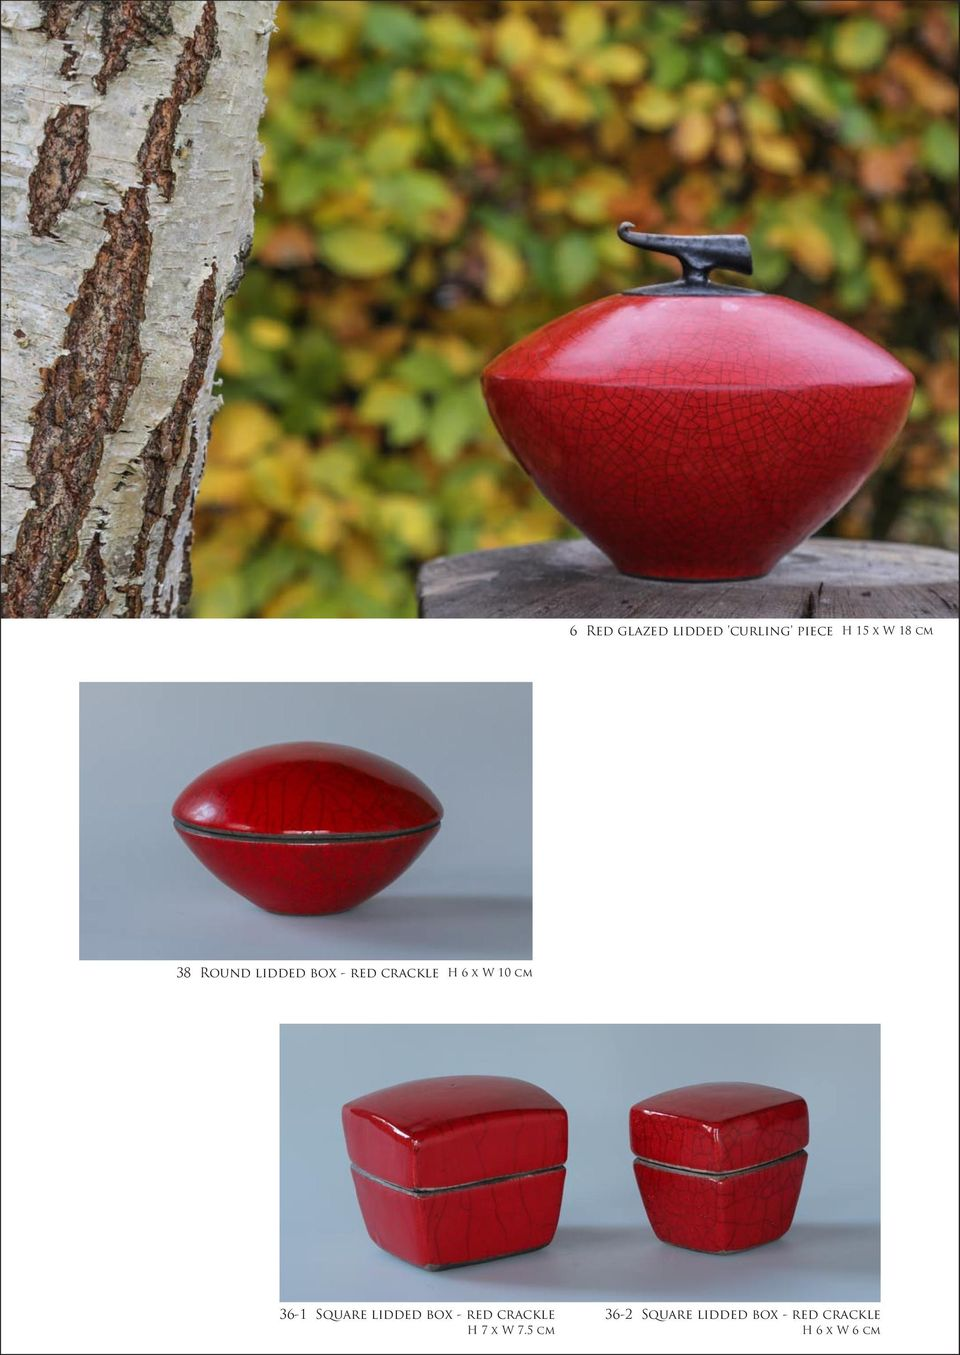 cm 36-1 Square lidded box - red crackle H 7 x W 7.